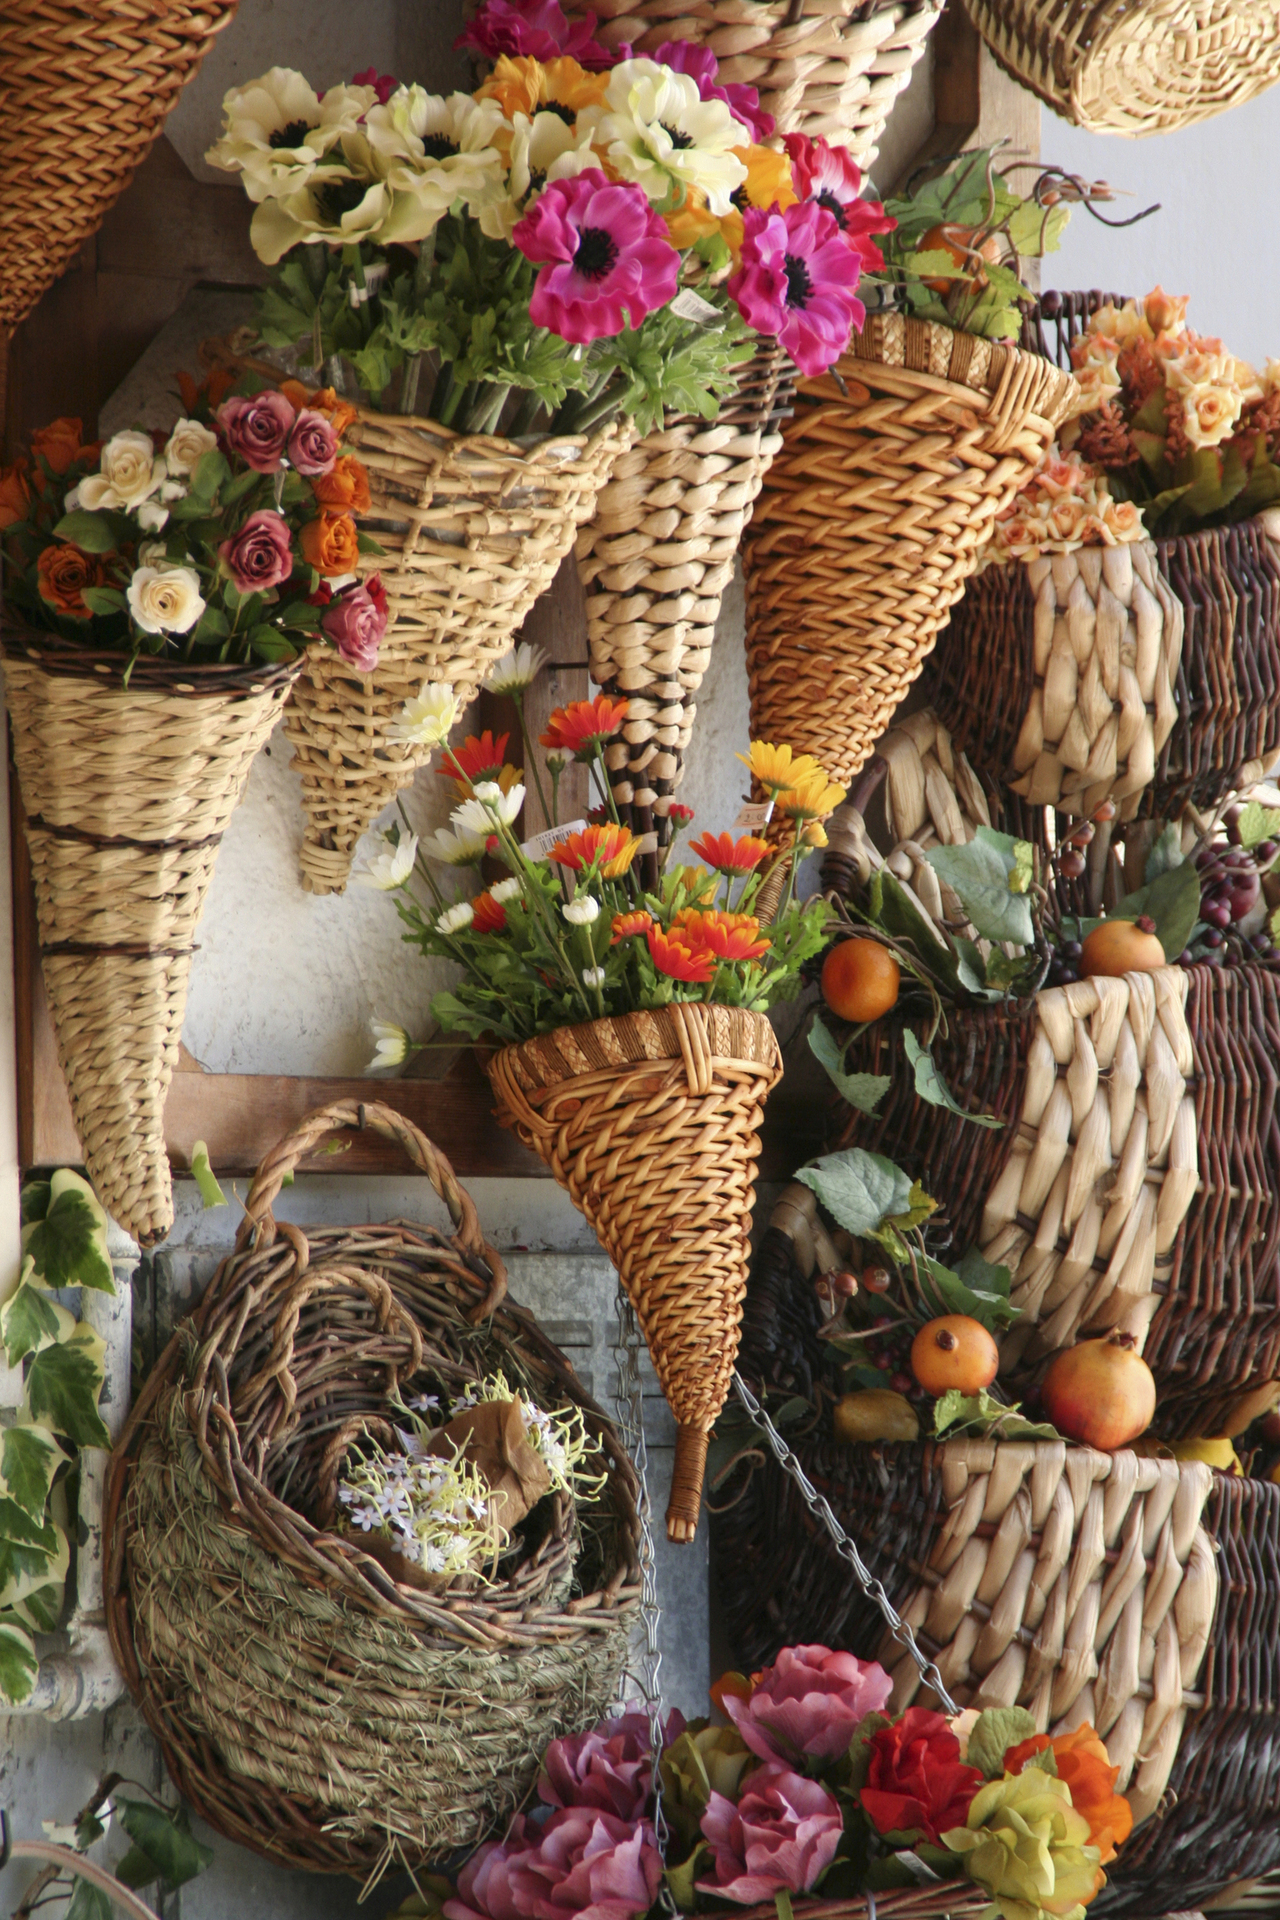 Winter flower arrangements with a rustic style